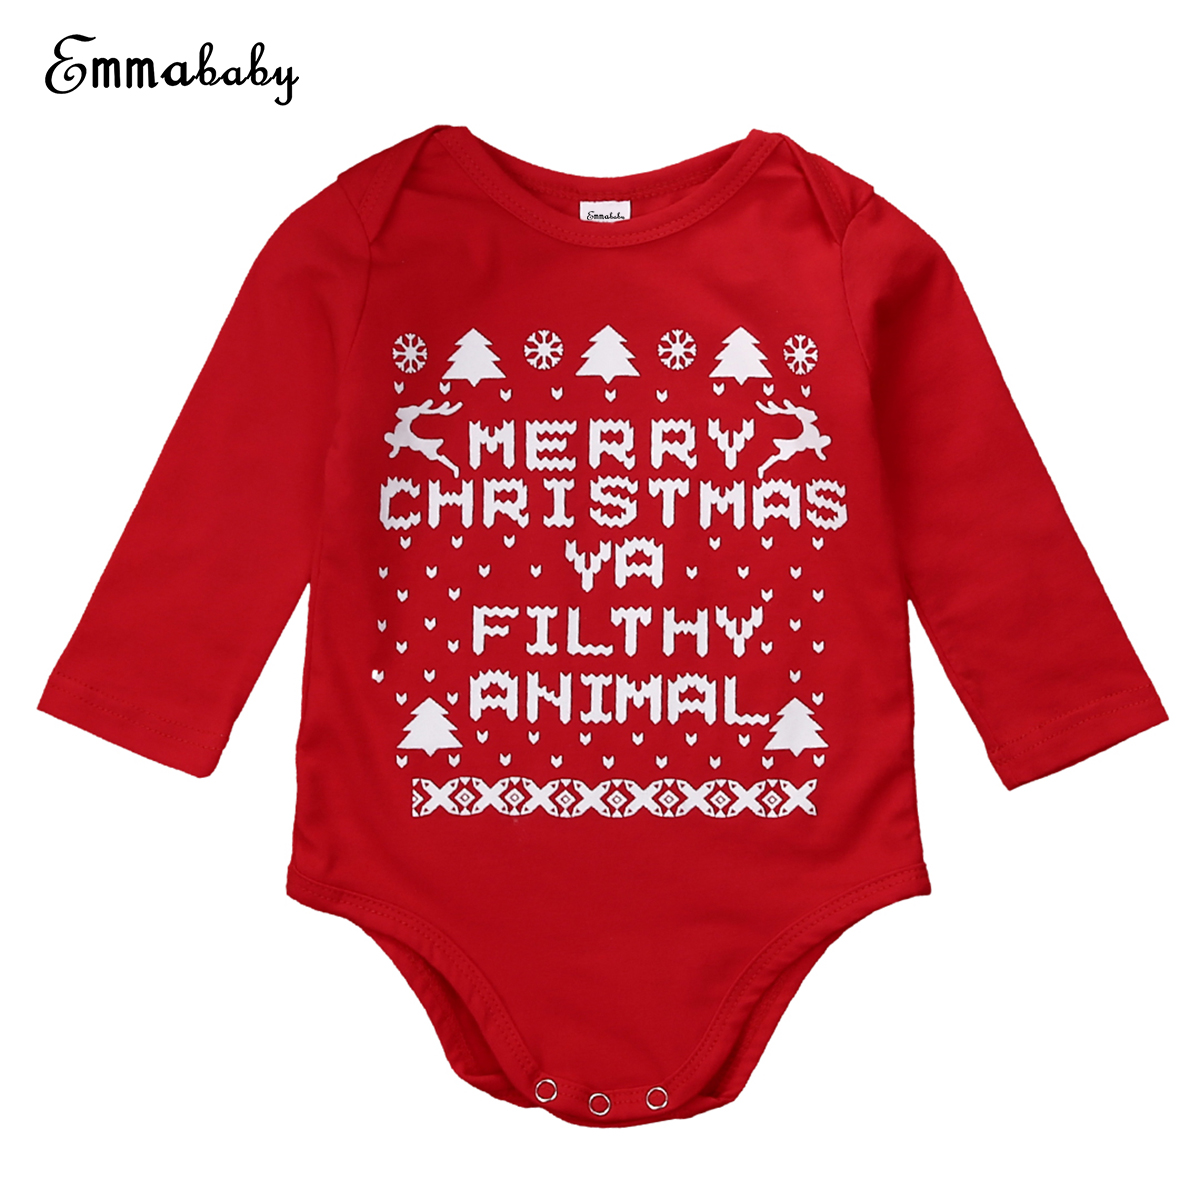 c7577be6051 Newborn Baby Boys Girls Christmas Rompers Long Sleeve Letter Jumpsuit Green  Red Outfits Kids Boy Girl Xmas Romper 0 18M-in Rompers from Mother   Kids  on ...